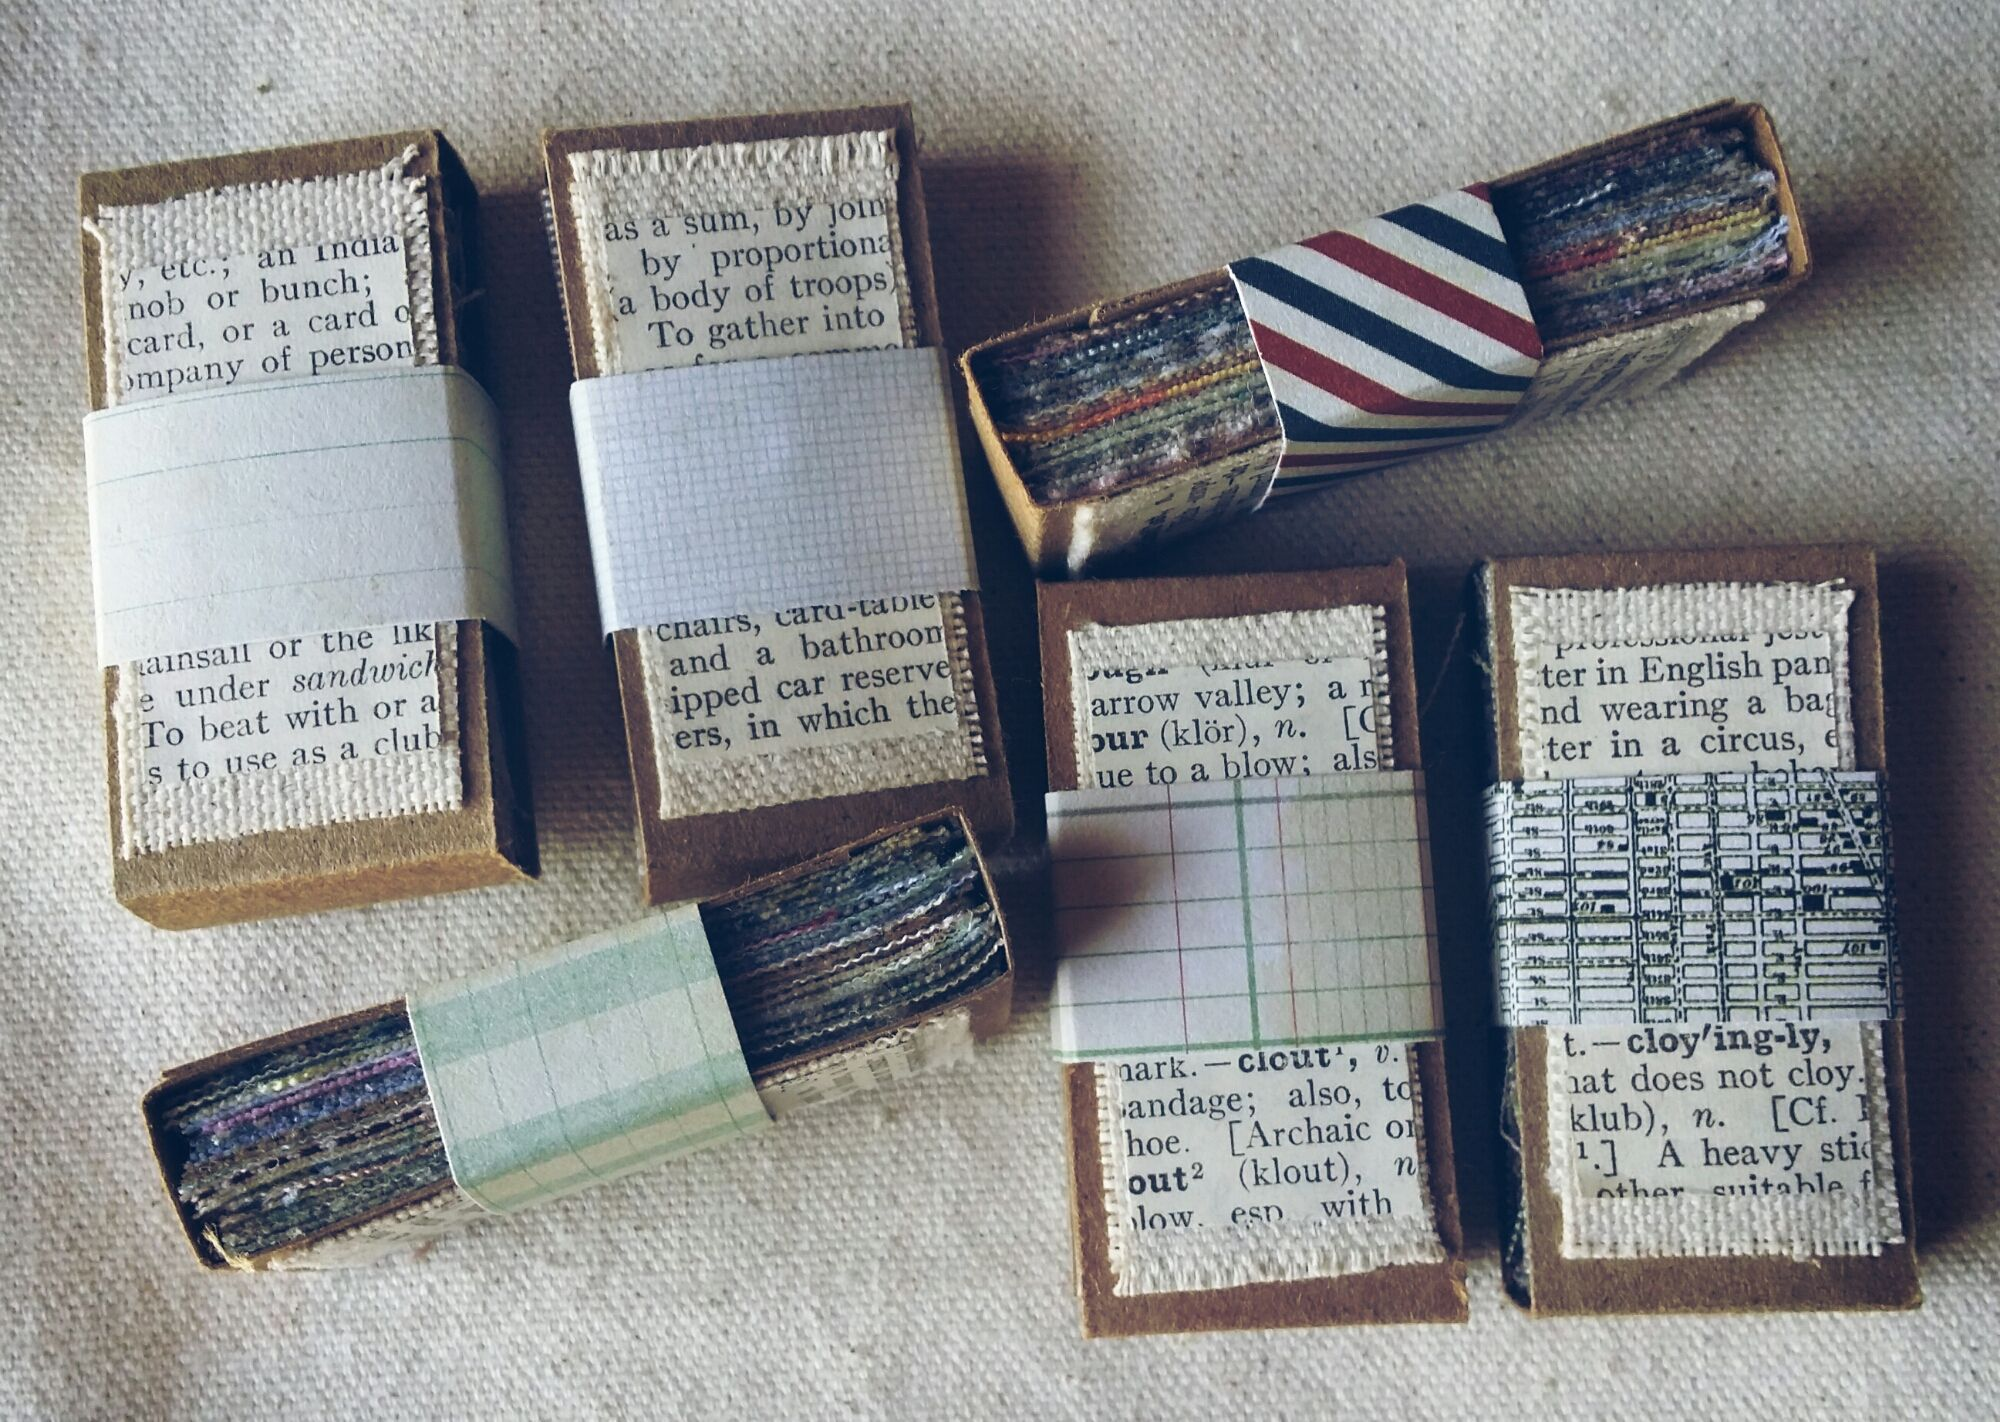 1 inch by 2 inch fabric sample packs to be included in ATC Swaps and as Snail Mail treats.  I wonder if matchboxes would work...